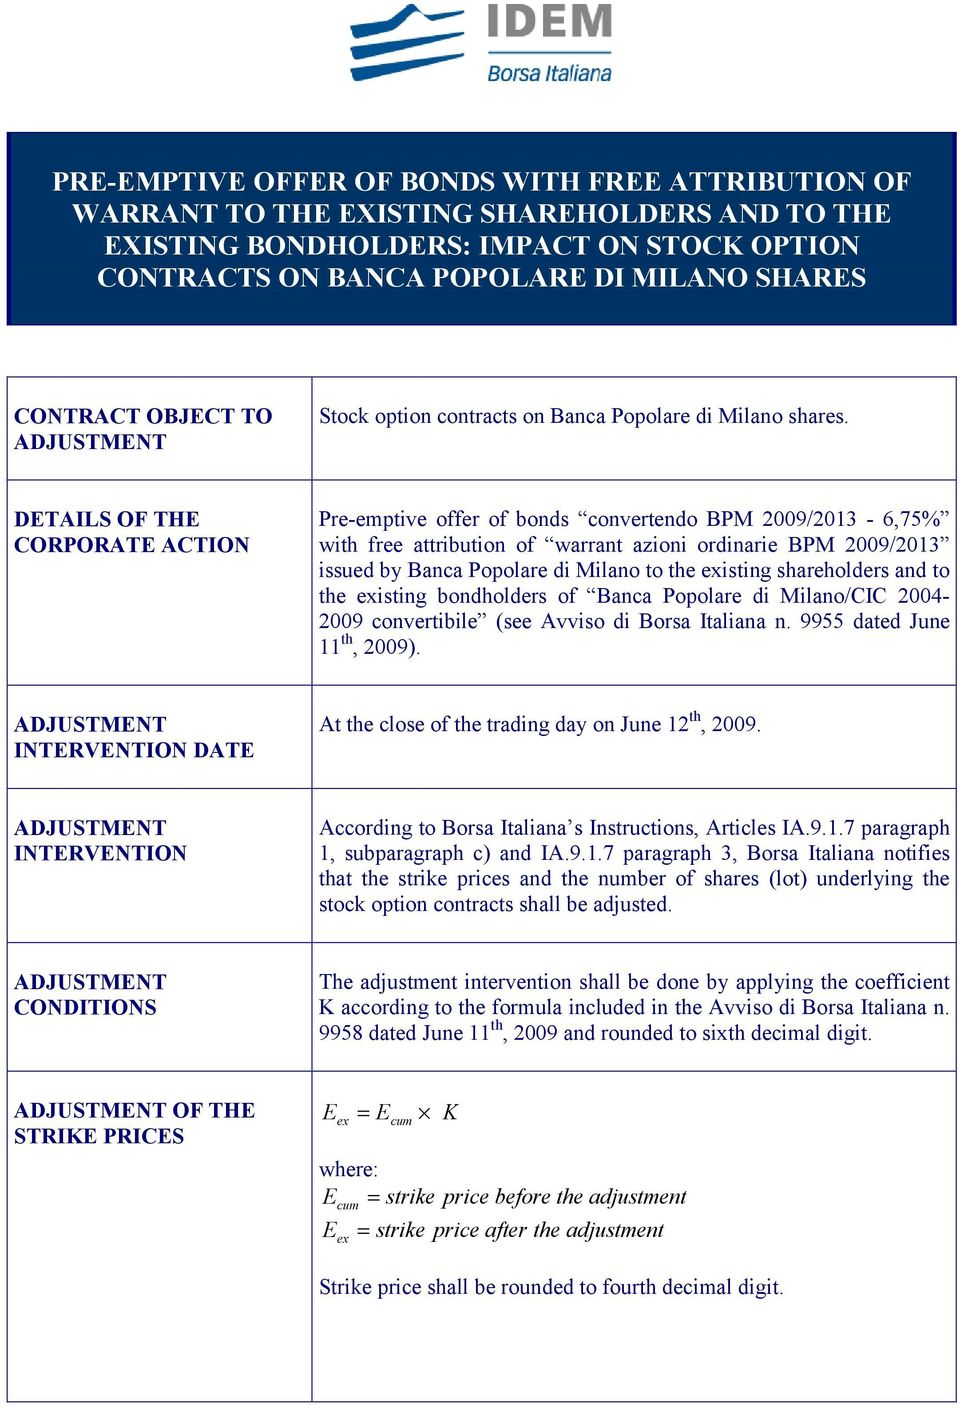 DETAILS OF THE CORPORATE ACTION Pre-emptive offer of bonds convertendo BPM 2009/2013-6,75% with free attribution of warrant azioni ordinarie BPM 2009/2013 issued by Banca Popolare di Milano to the